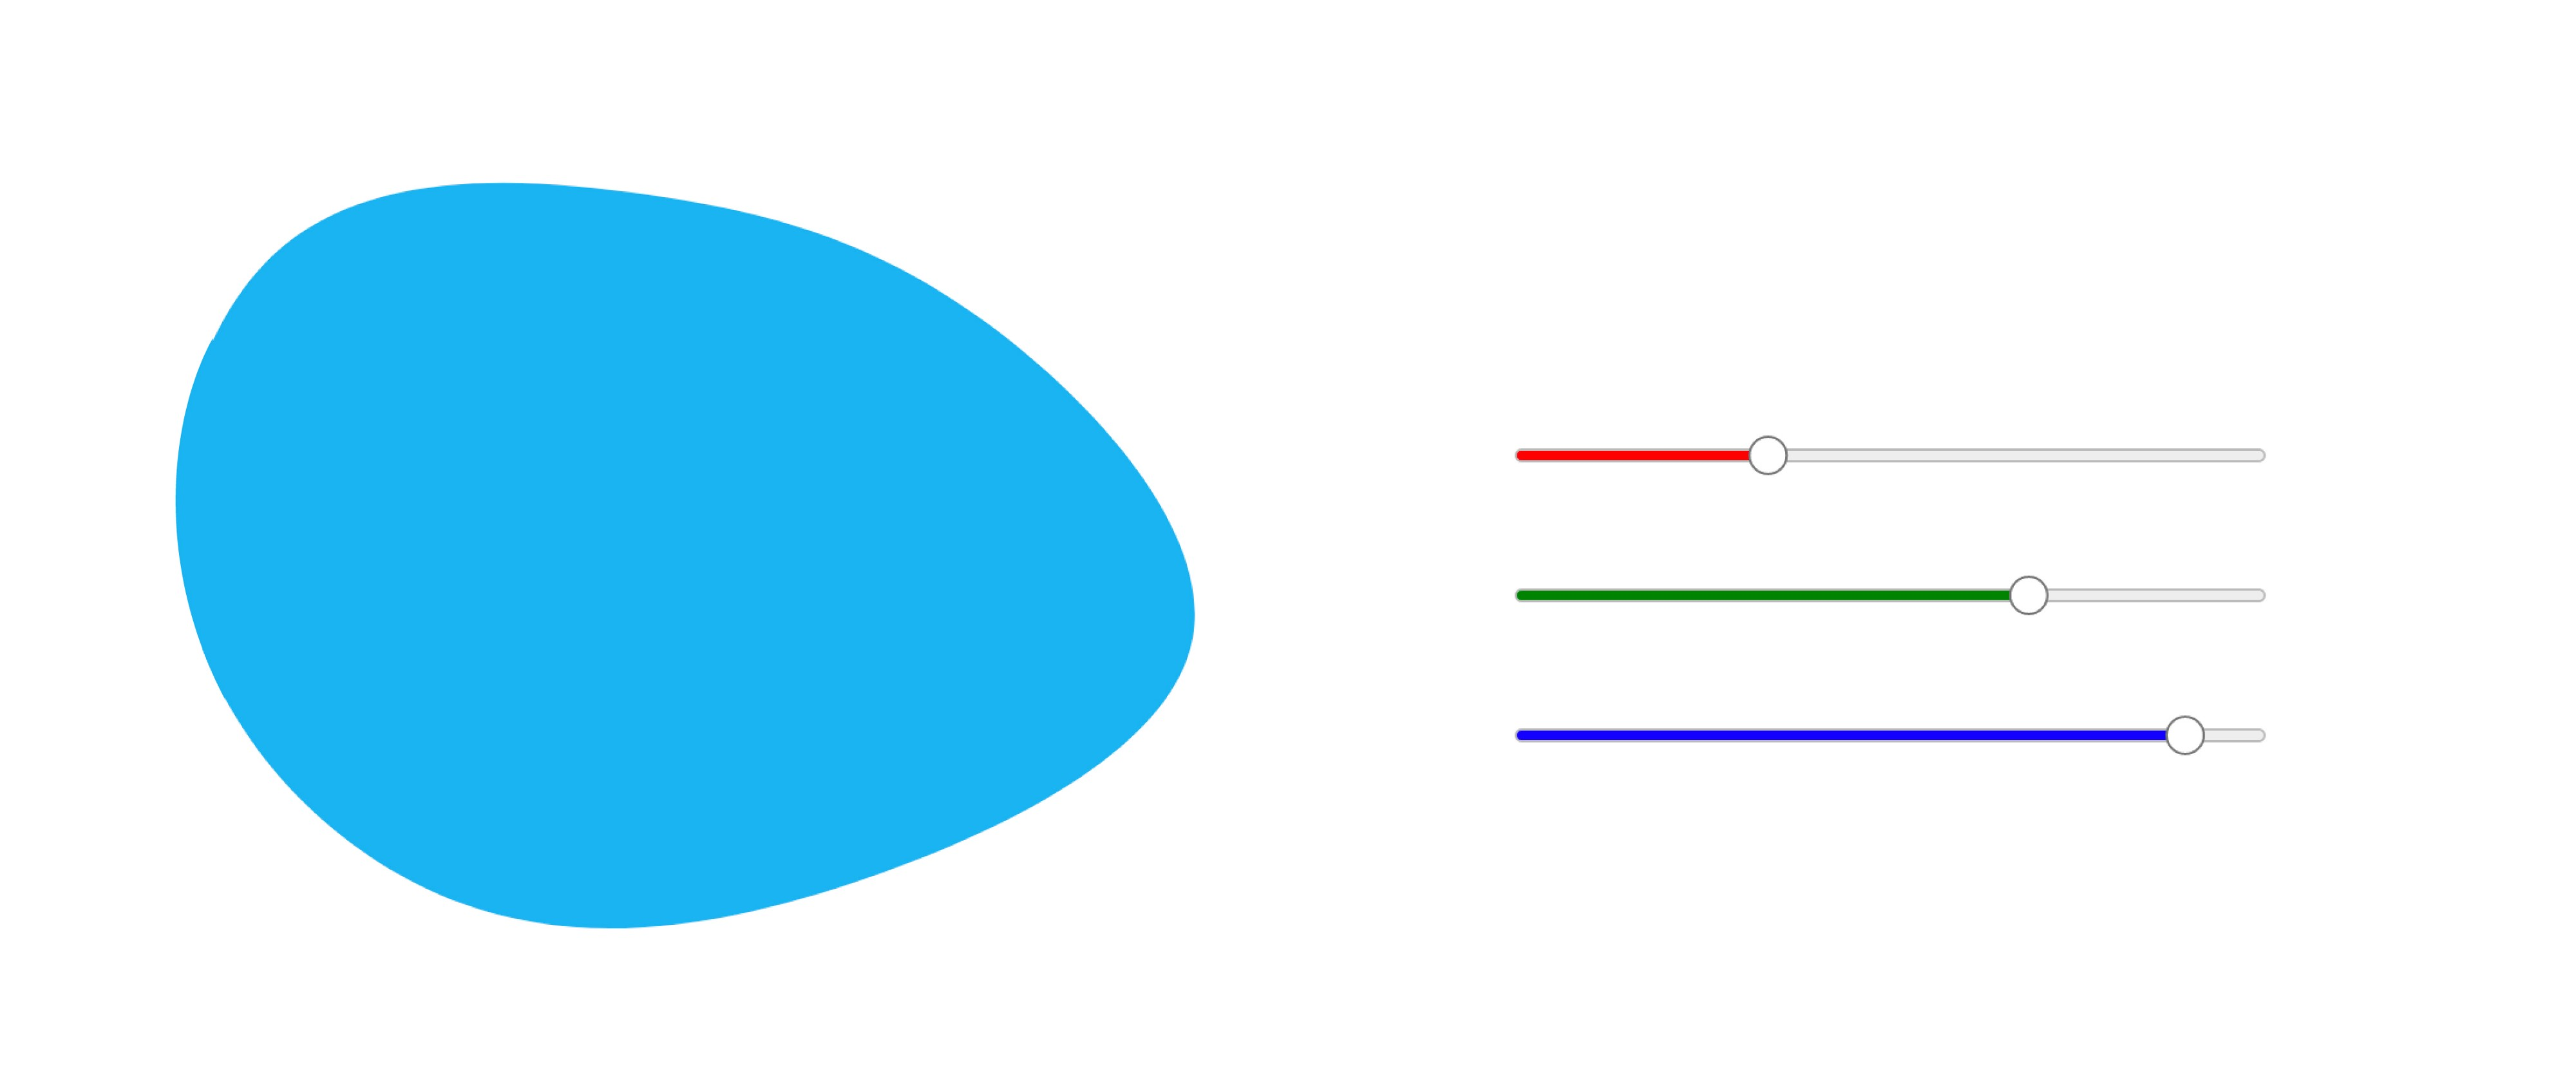 How to build sliders with d3 js - Better Programming - Medium